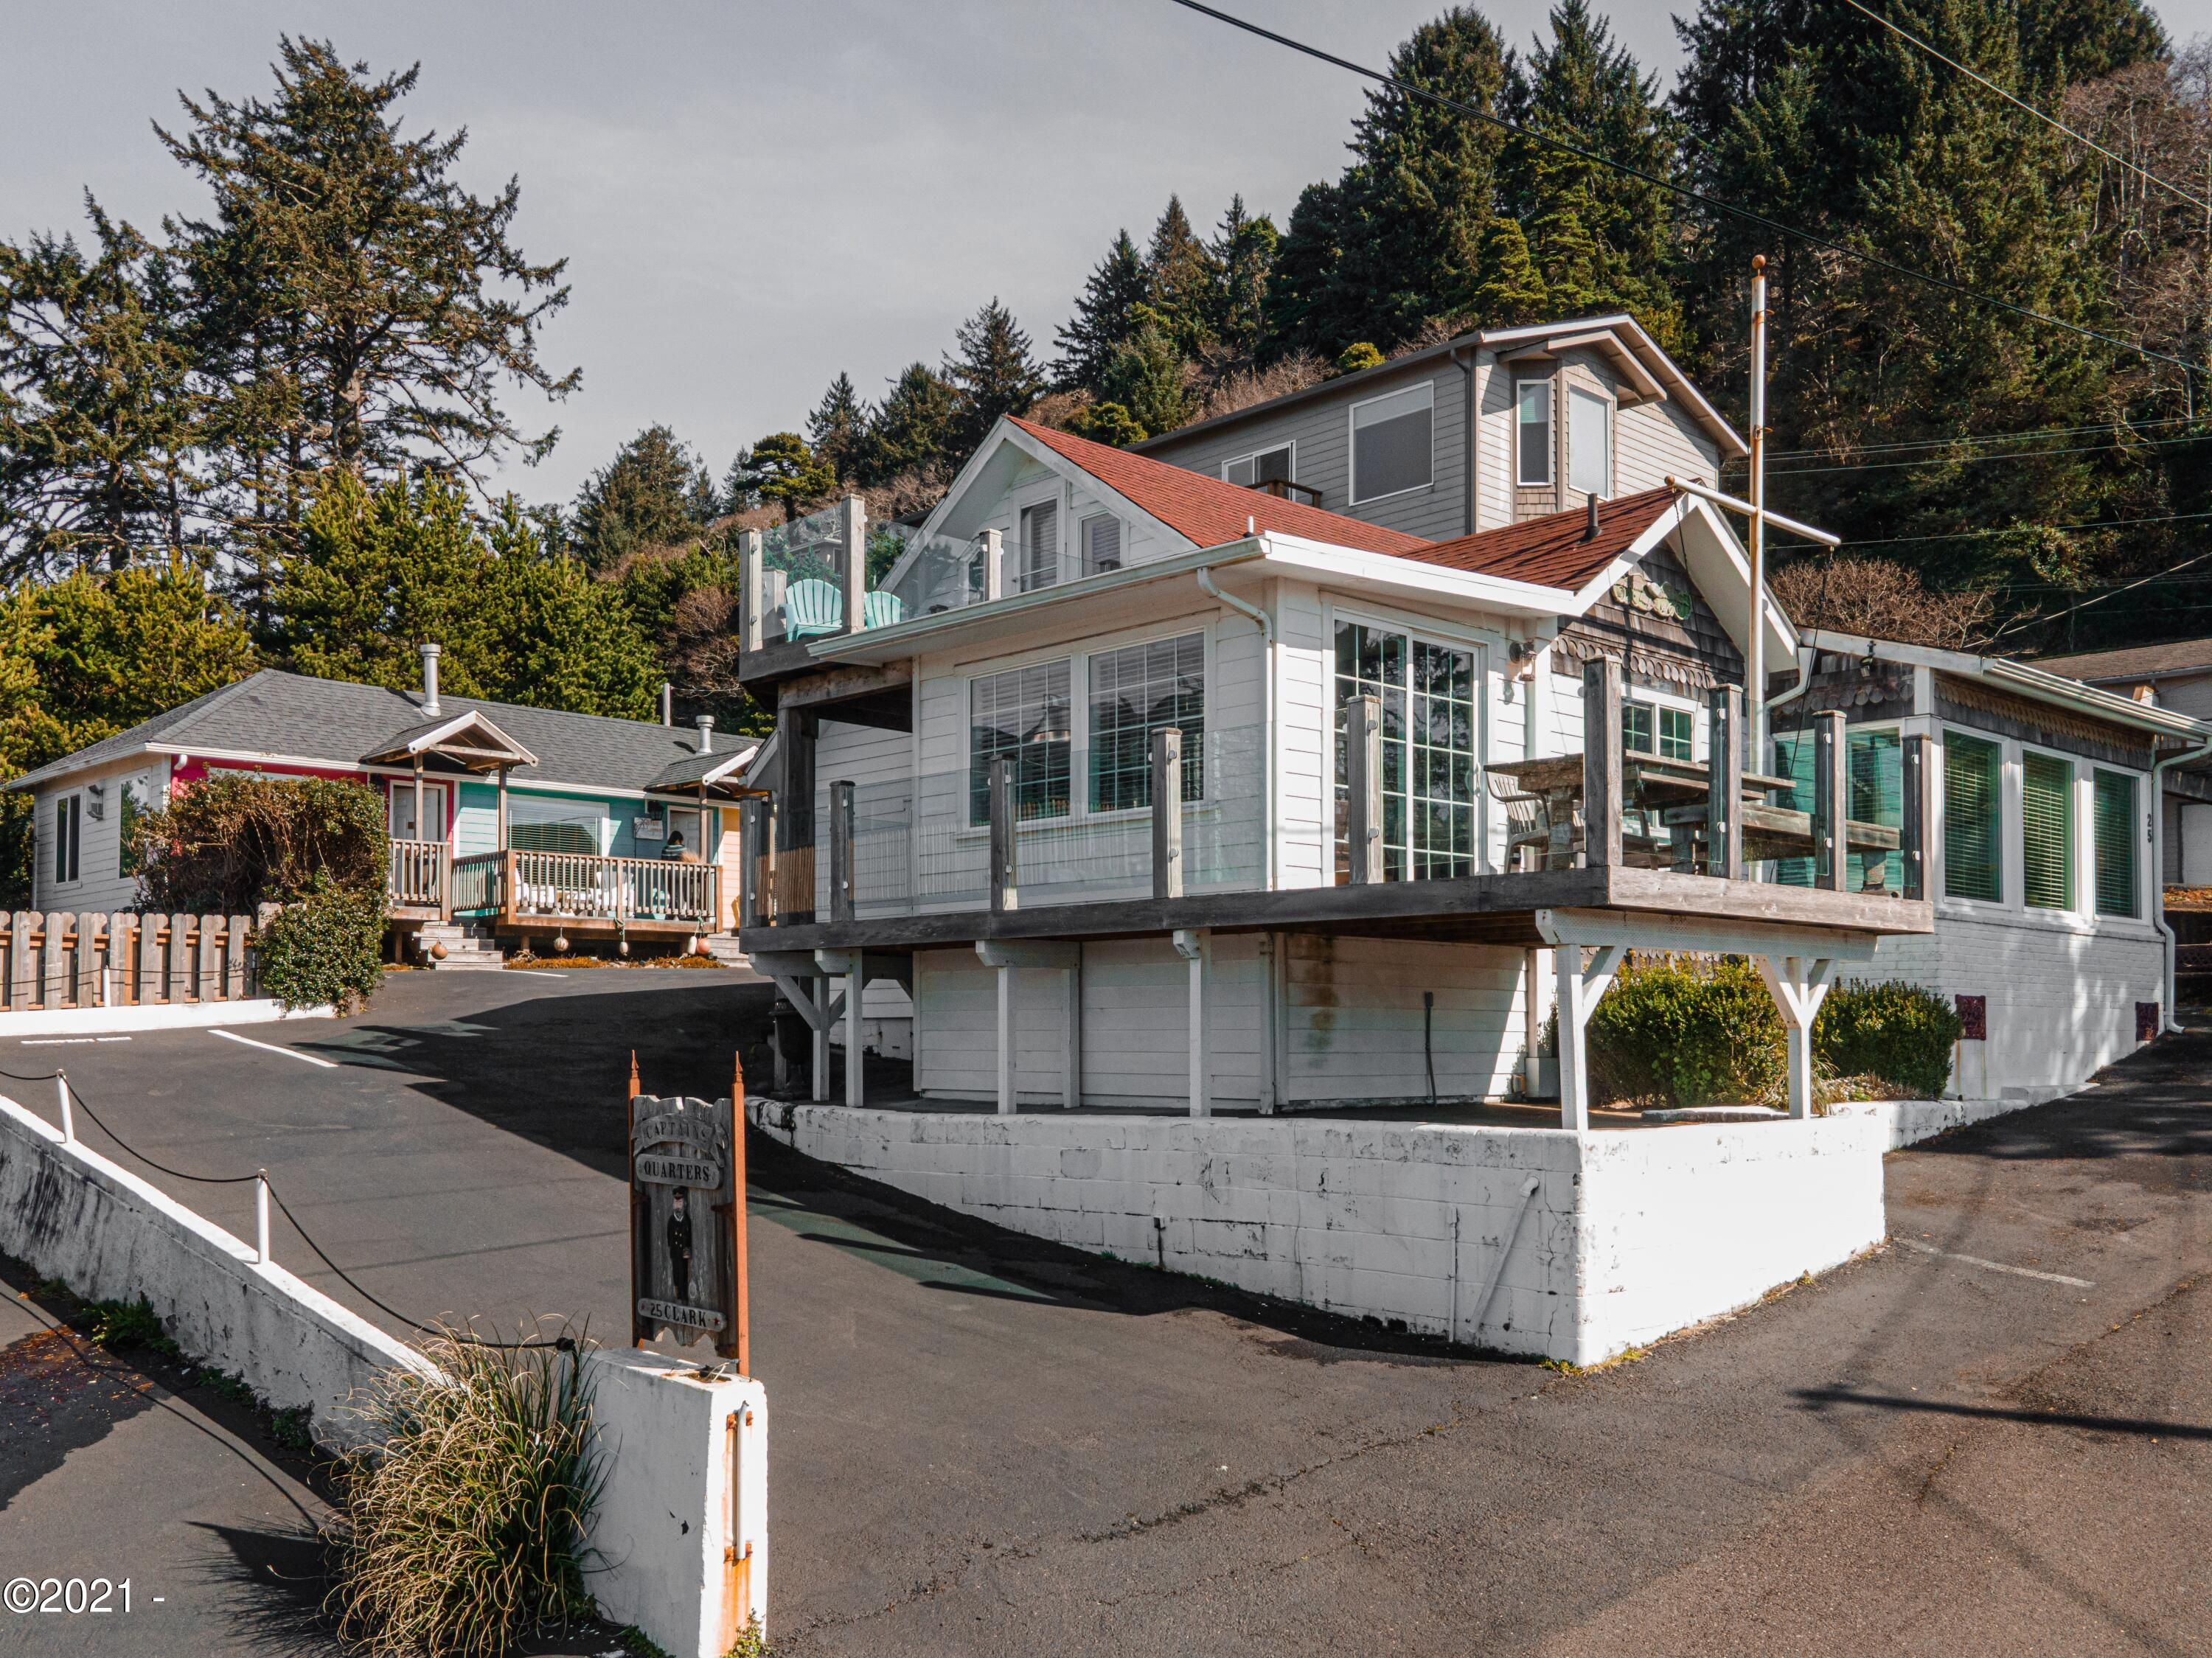 25 Clarke St, Depoe Bay, OR 97341